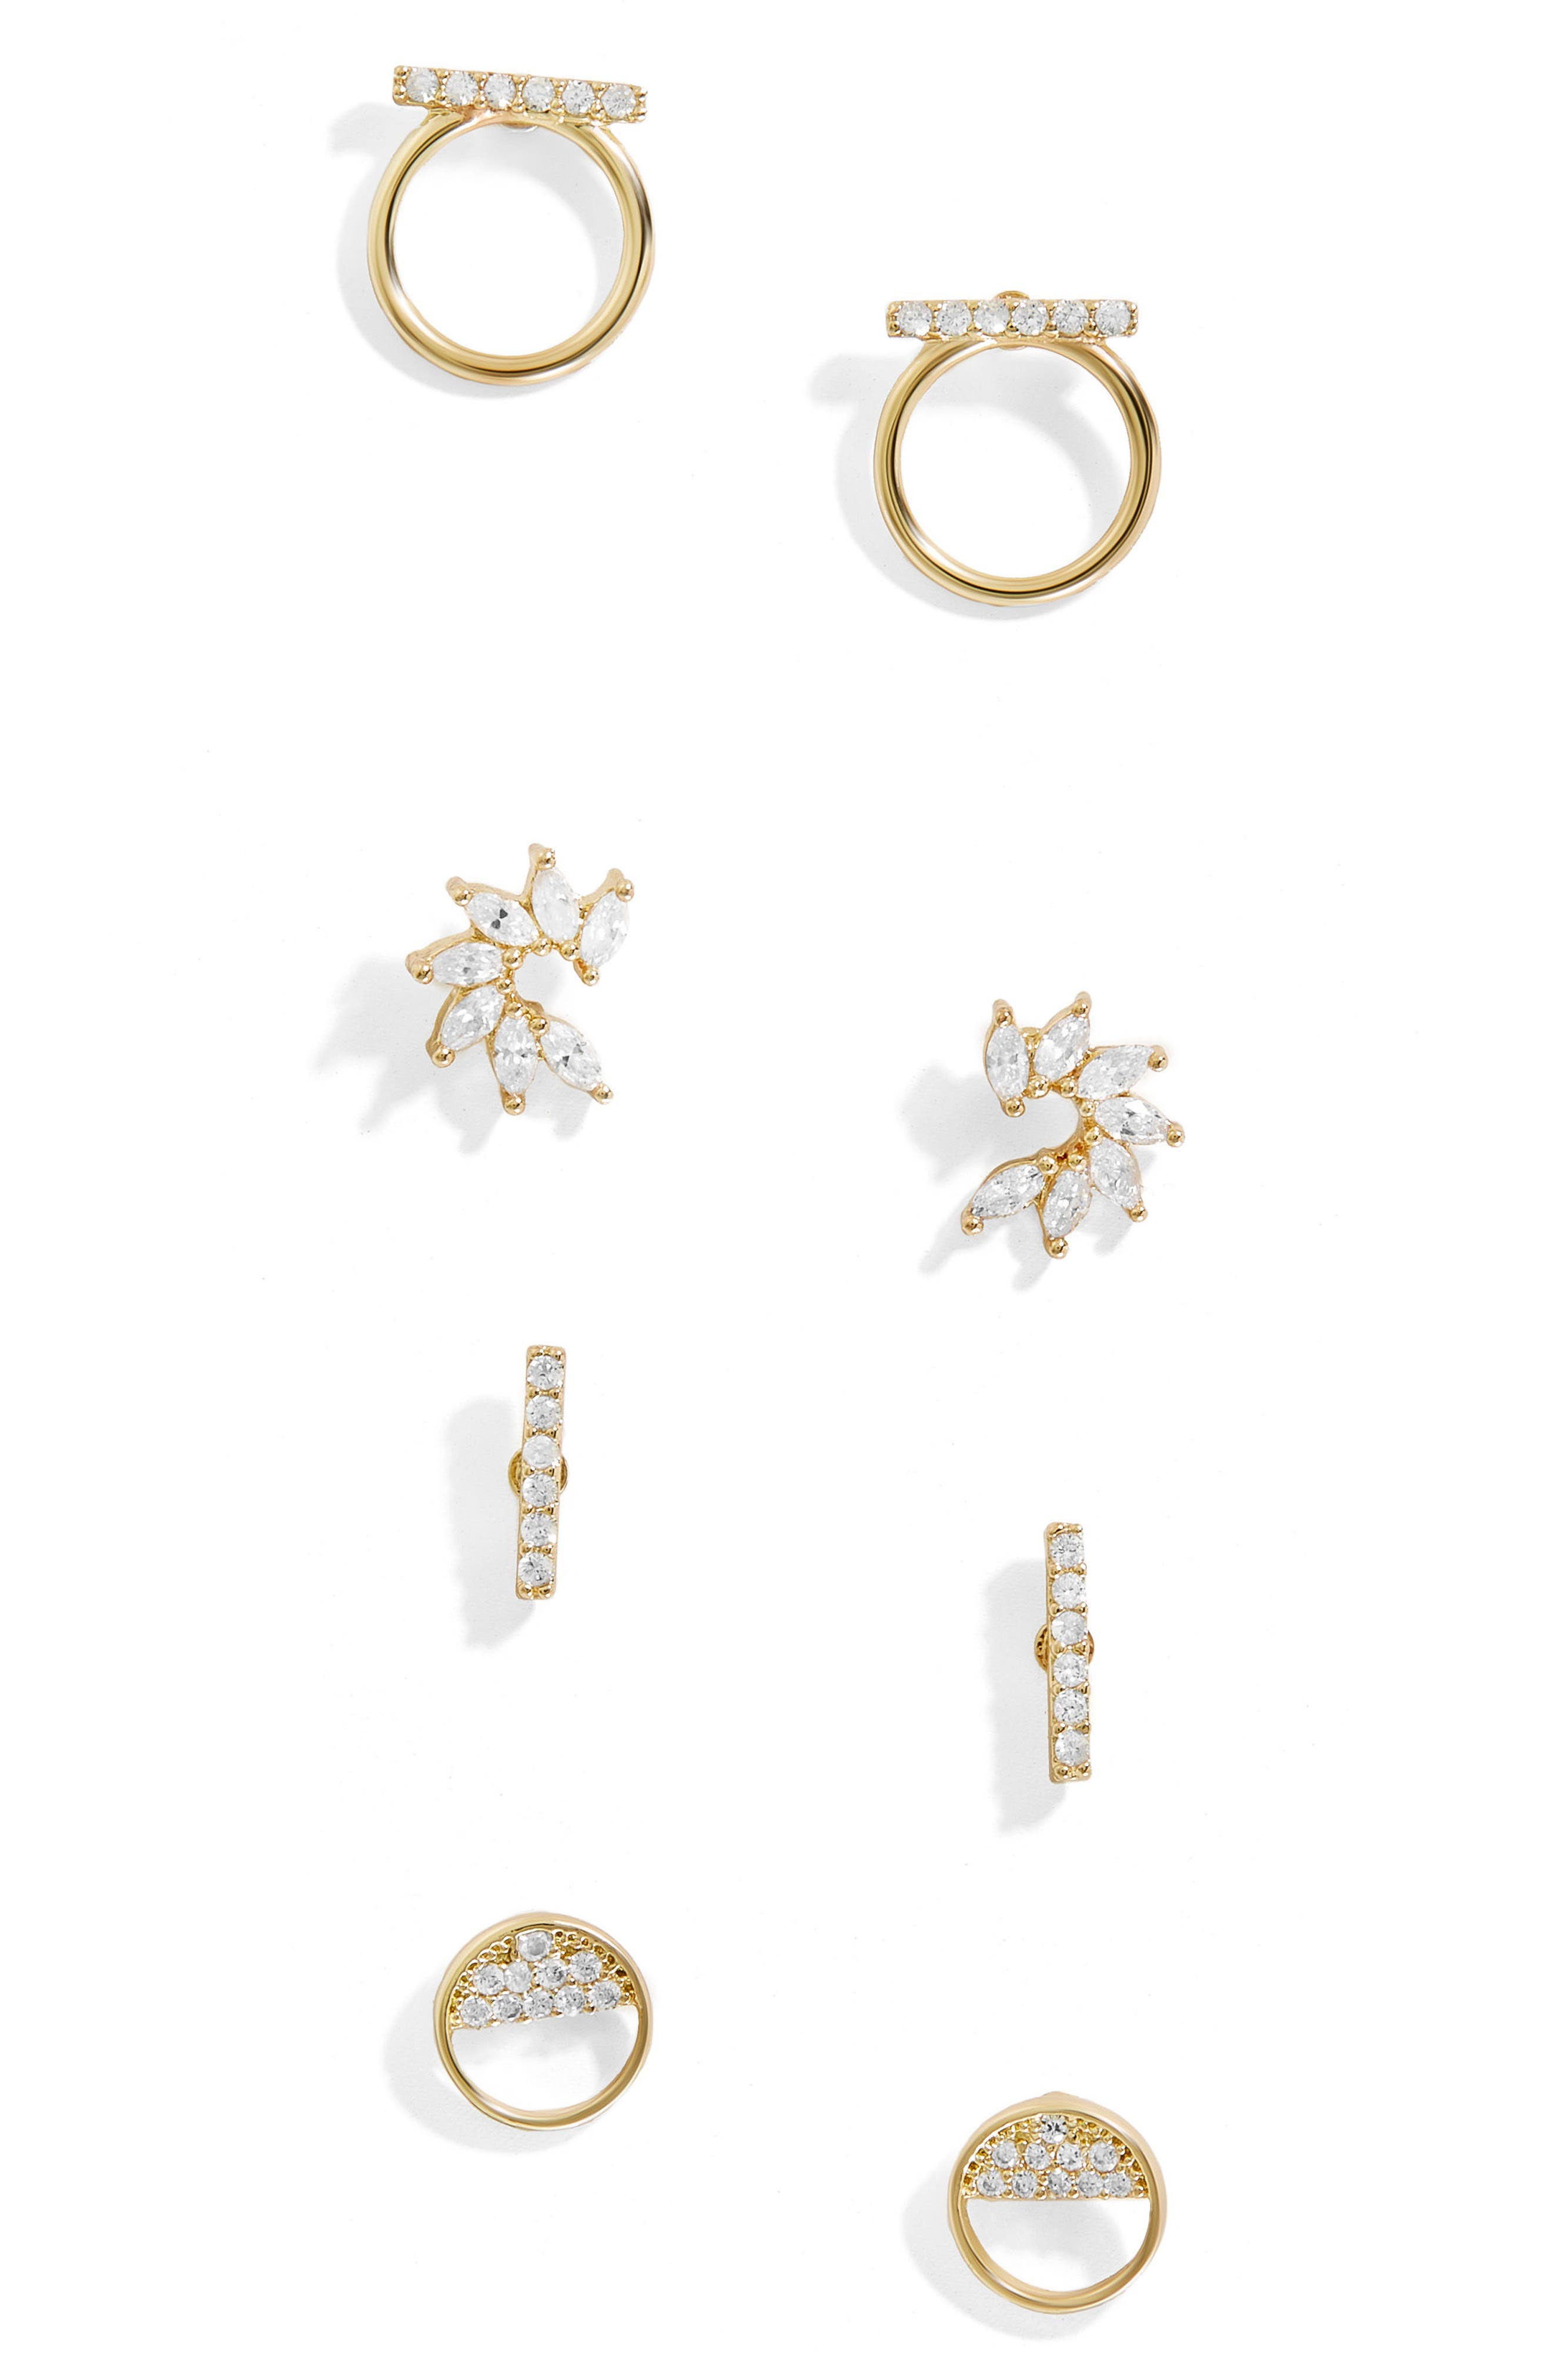 Delicate Set of 4 Stud Earrings,                         Main,                         color, 710